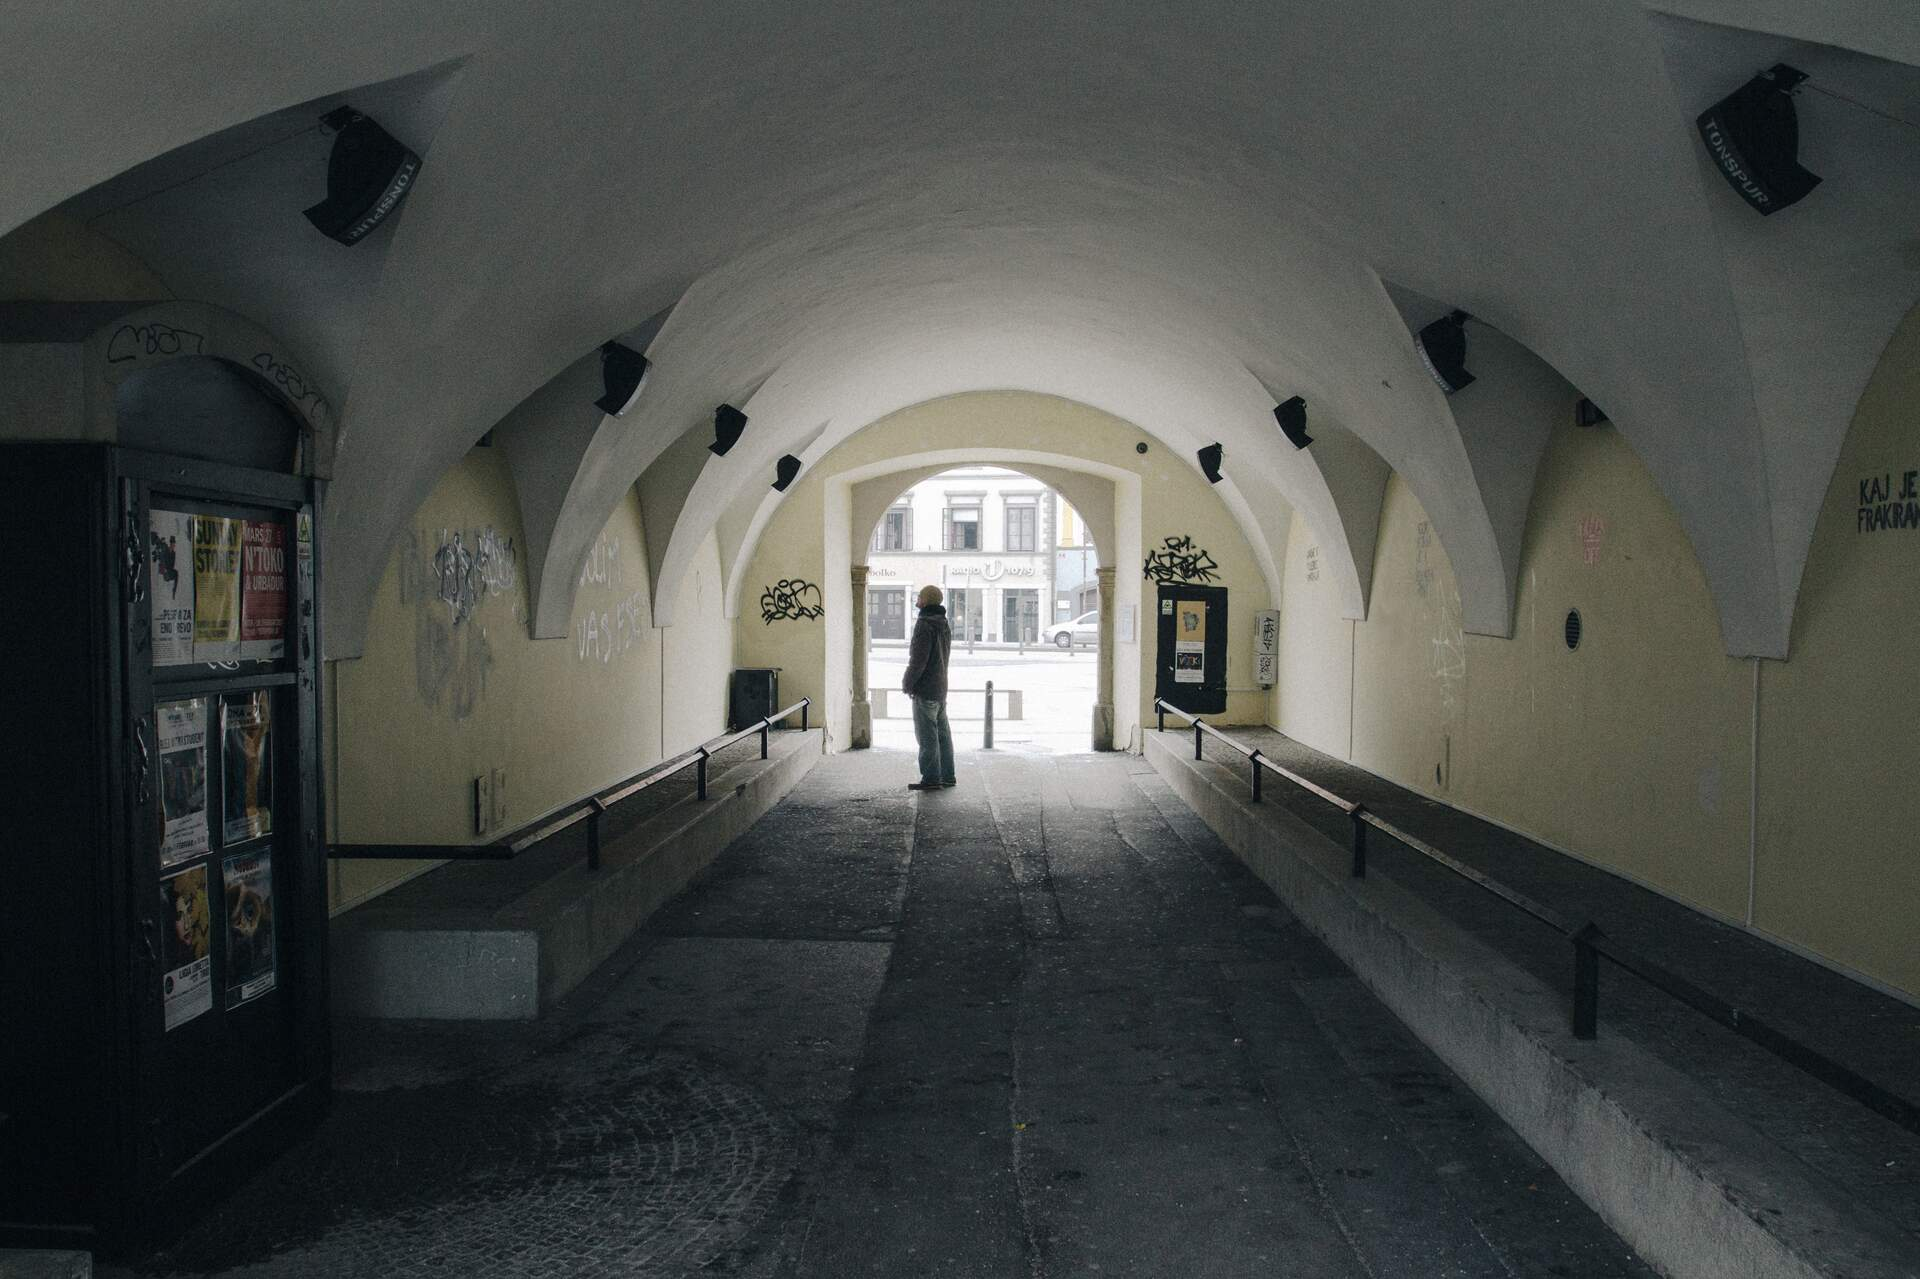 TONSPUR revives the passage under Maribor's City Hall with sound